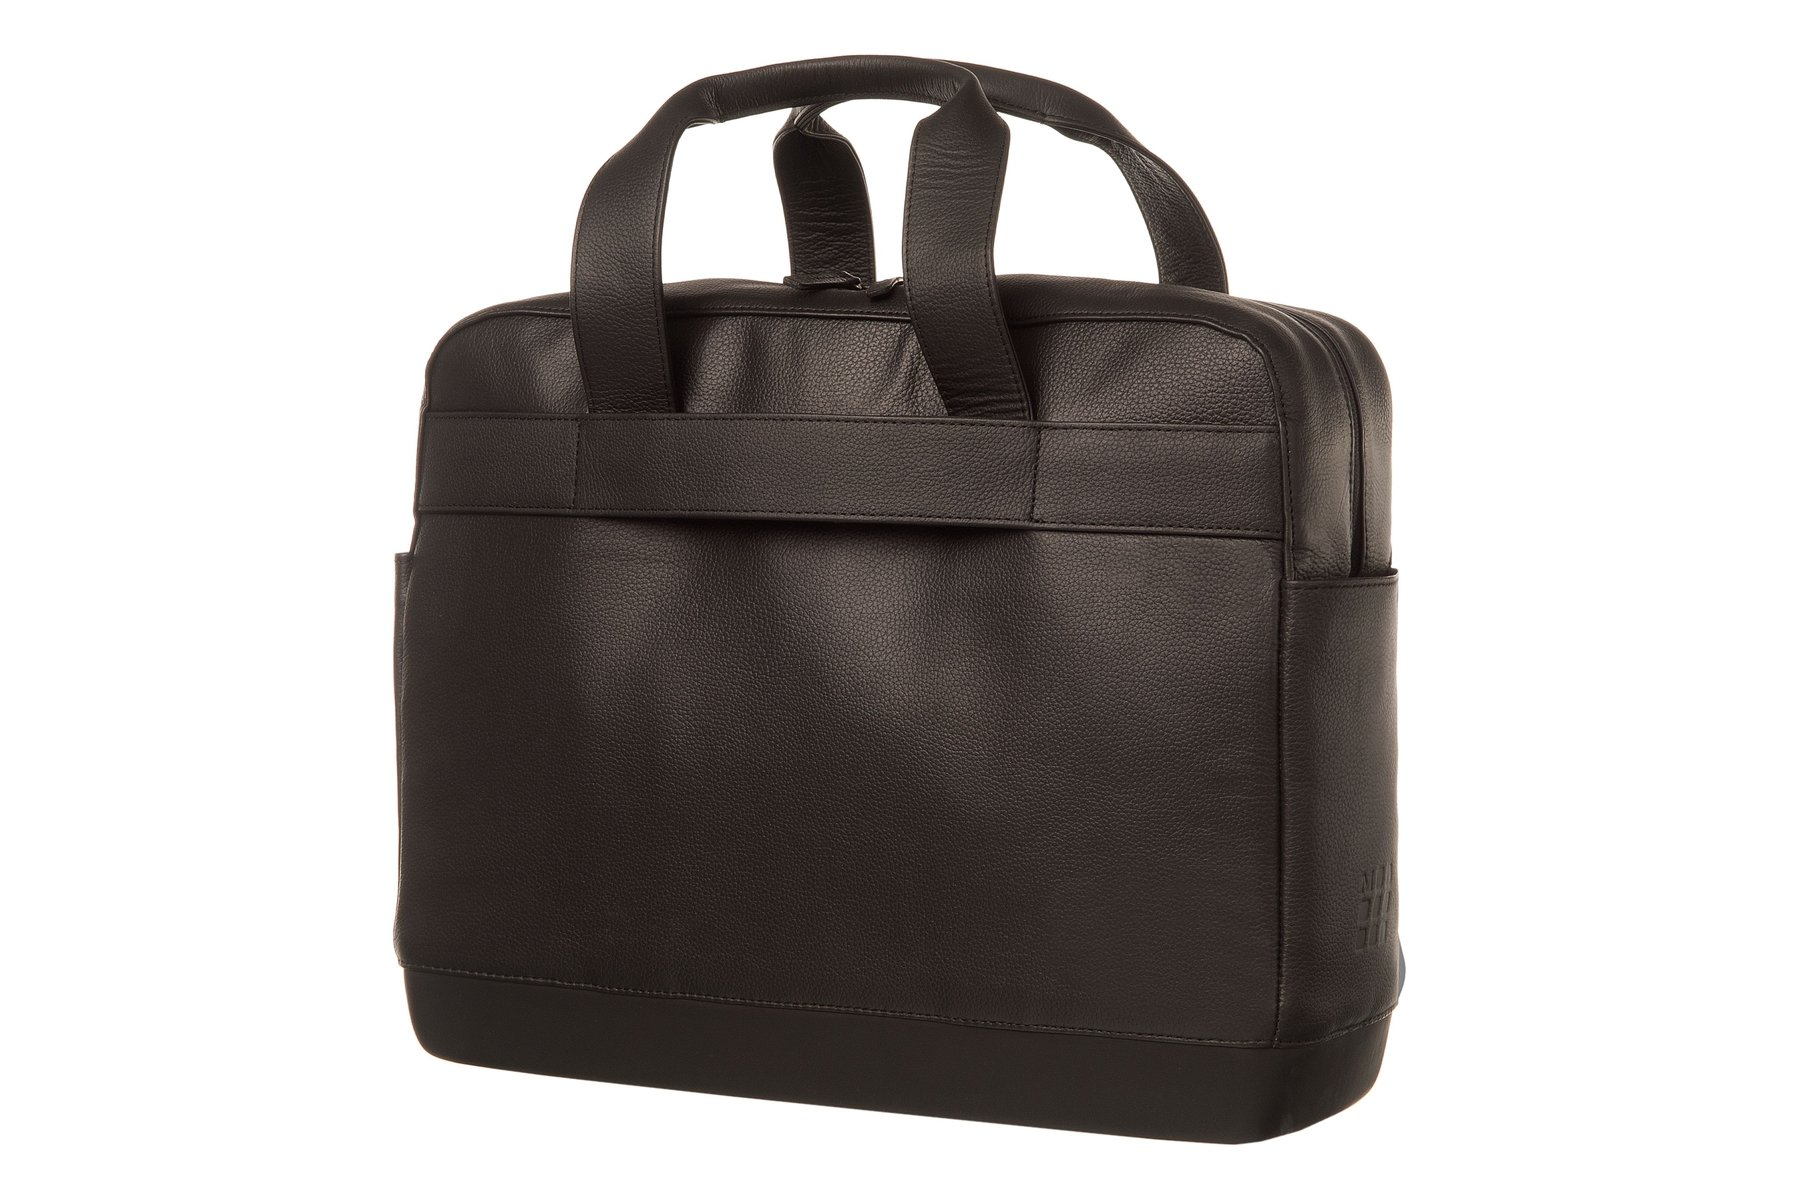 Moleskine Classic Leather Utility Bag, Black, For Work, School, Travel, and Everyday Use, Space for Tablet Laptop and Chargers, Notebook Planner or Organizer, Padded Adjustable Straps, Secure Zipper by Moleskine (Image #2)